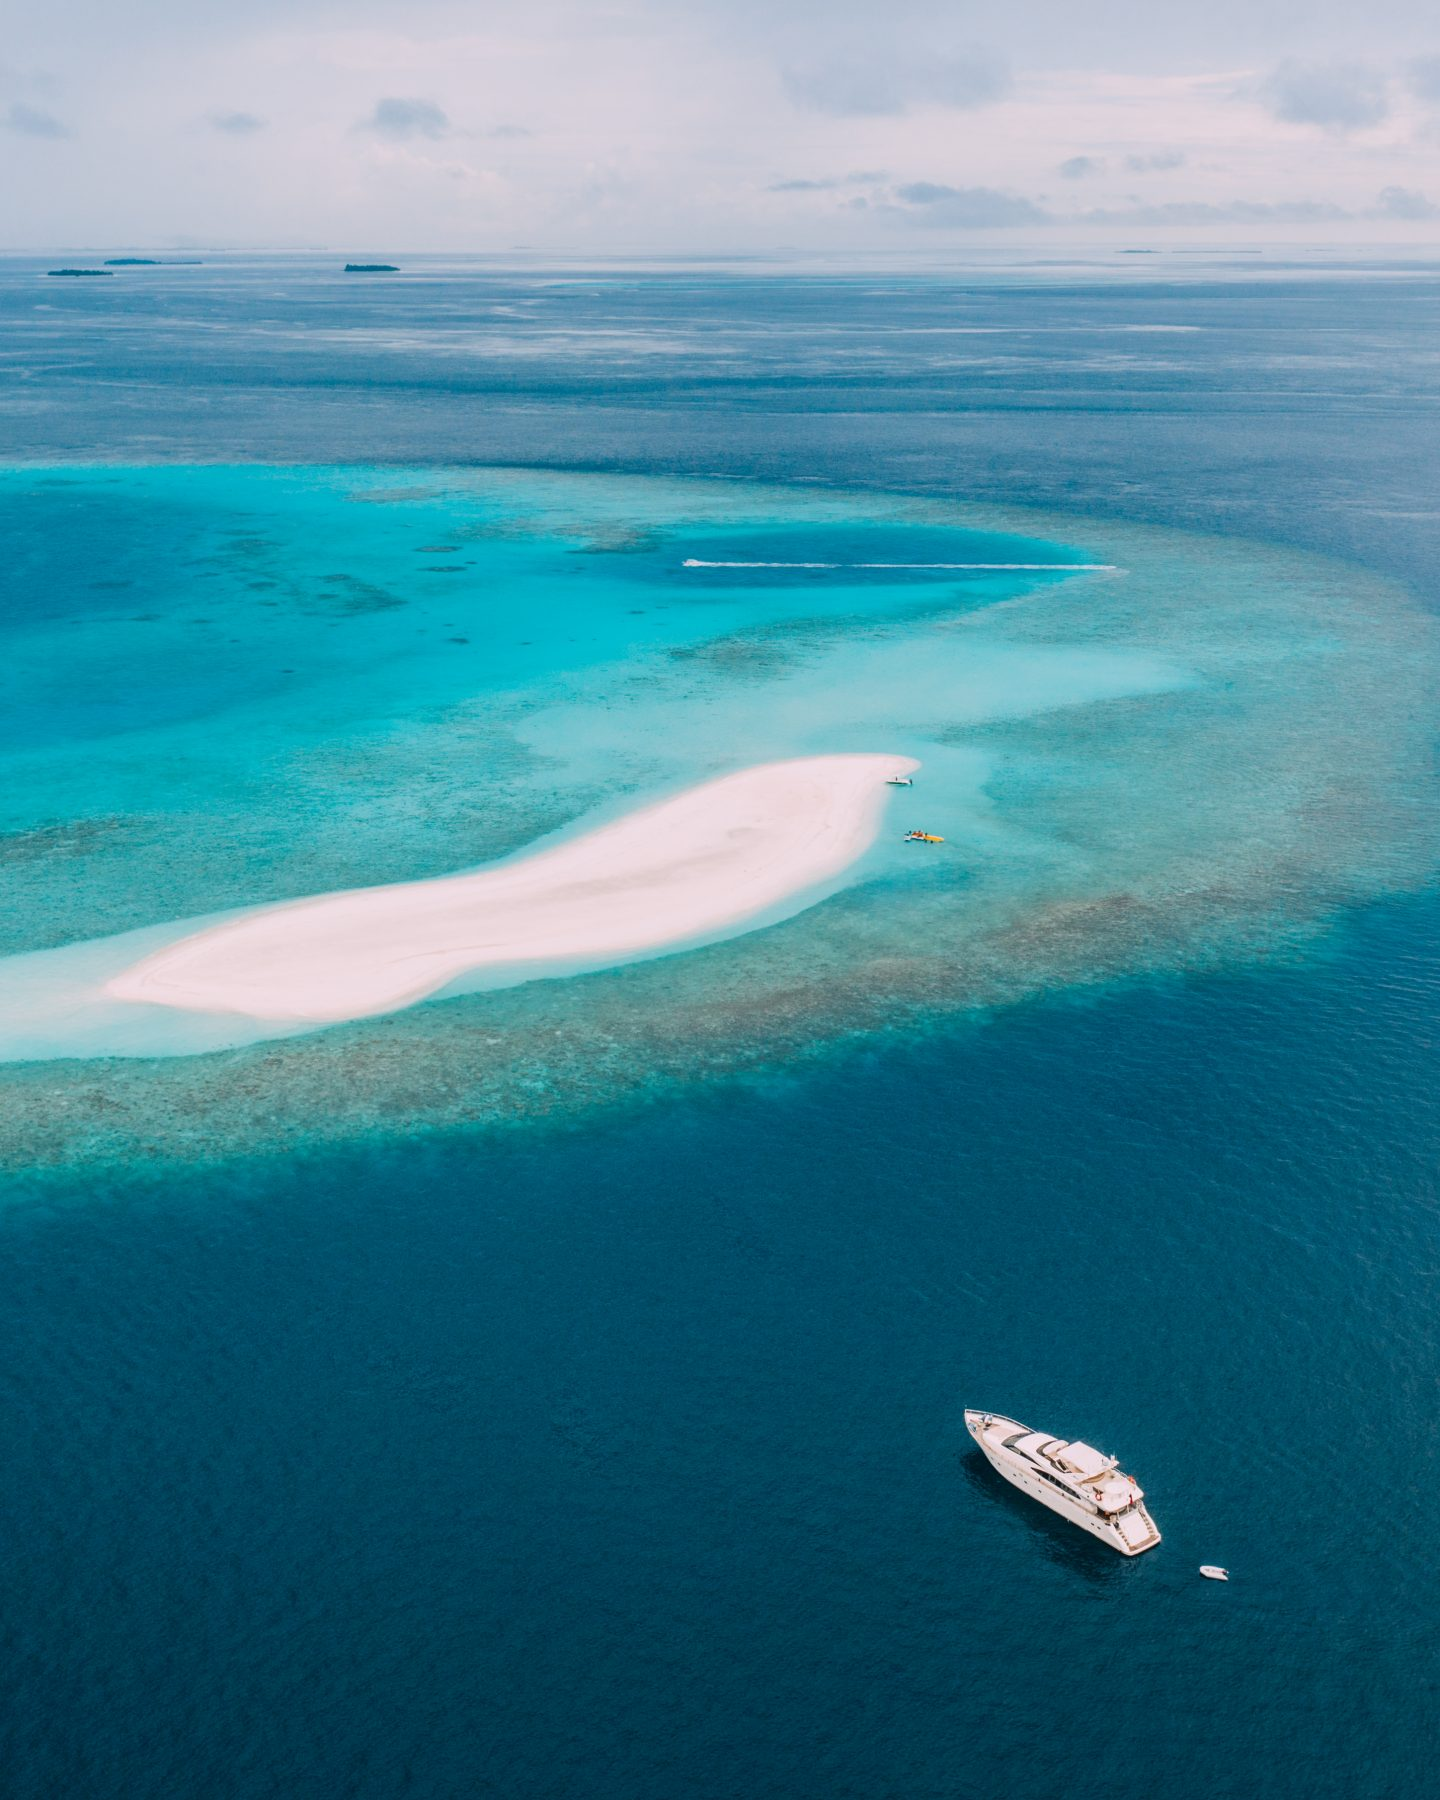 Aerial view of the Maldives and the luxury yacht